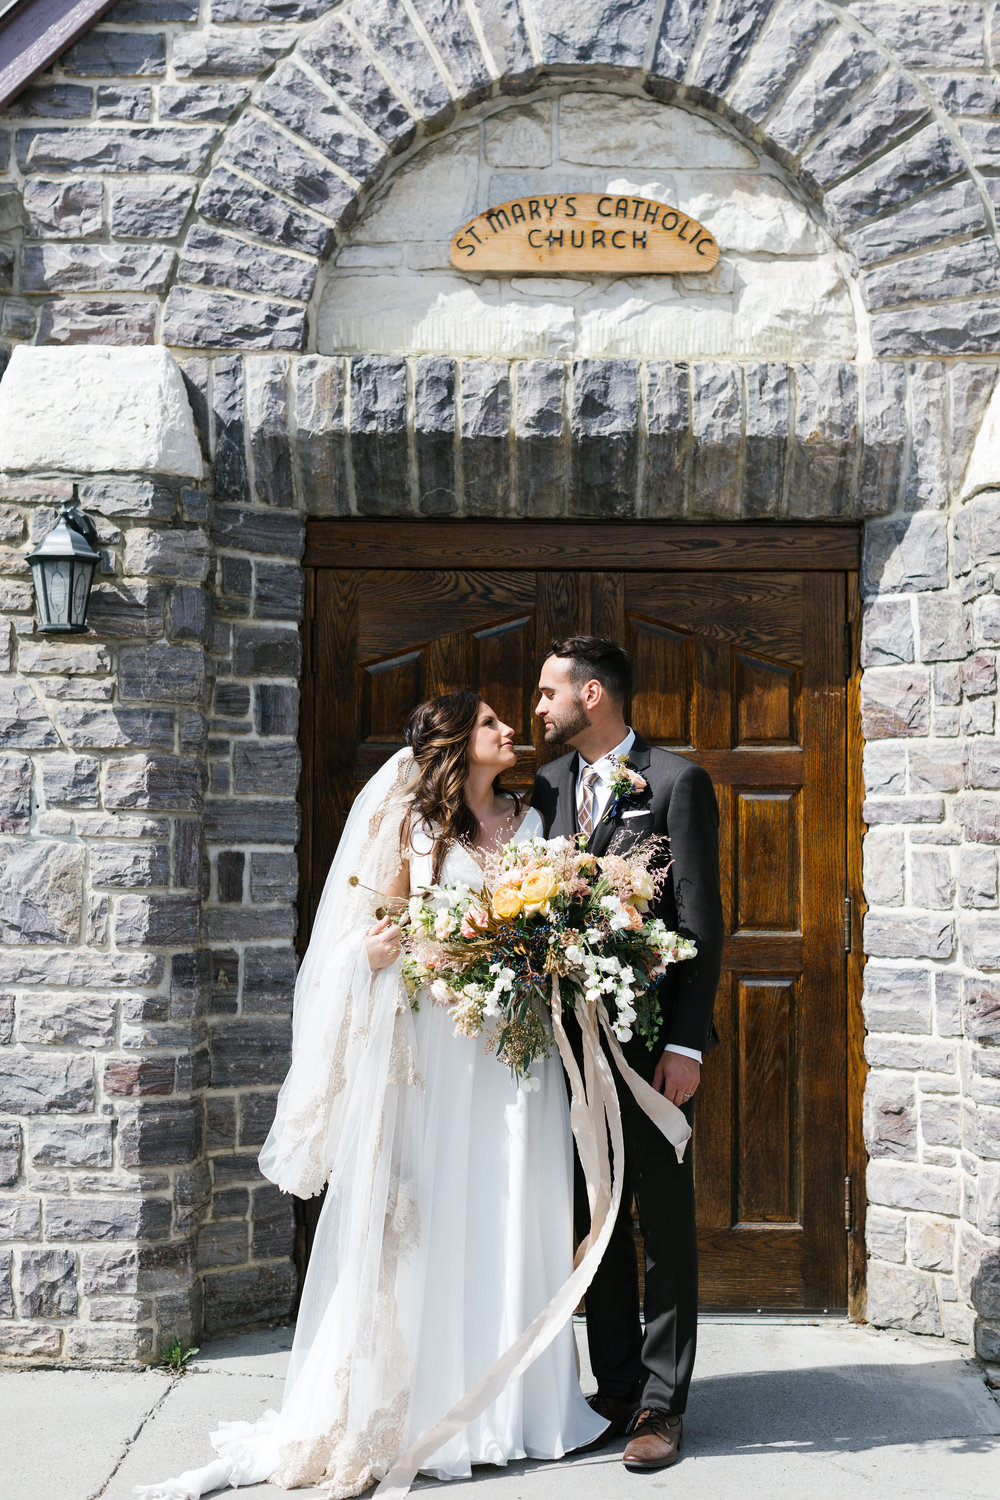 Photos by Shannon Yau  Our Calgary couple, Riley + Regan, traveled to the charming mountain church of St. Mary's in Banff and Cornerstone Theatre in Canmore for their magical mountain wedding where florals played a leading role.